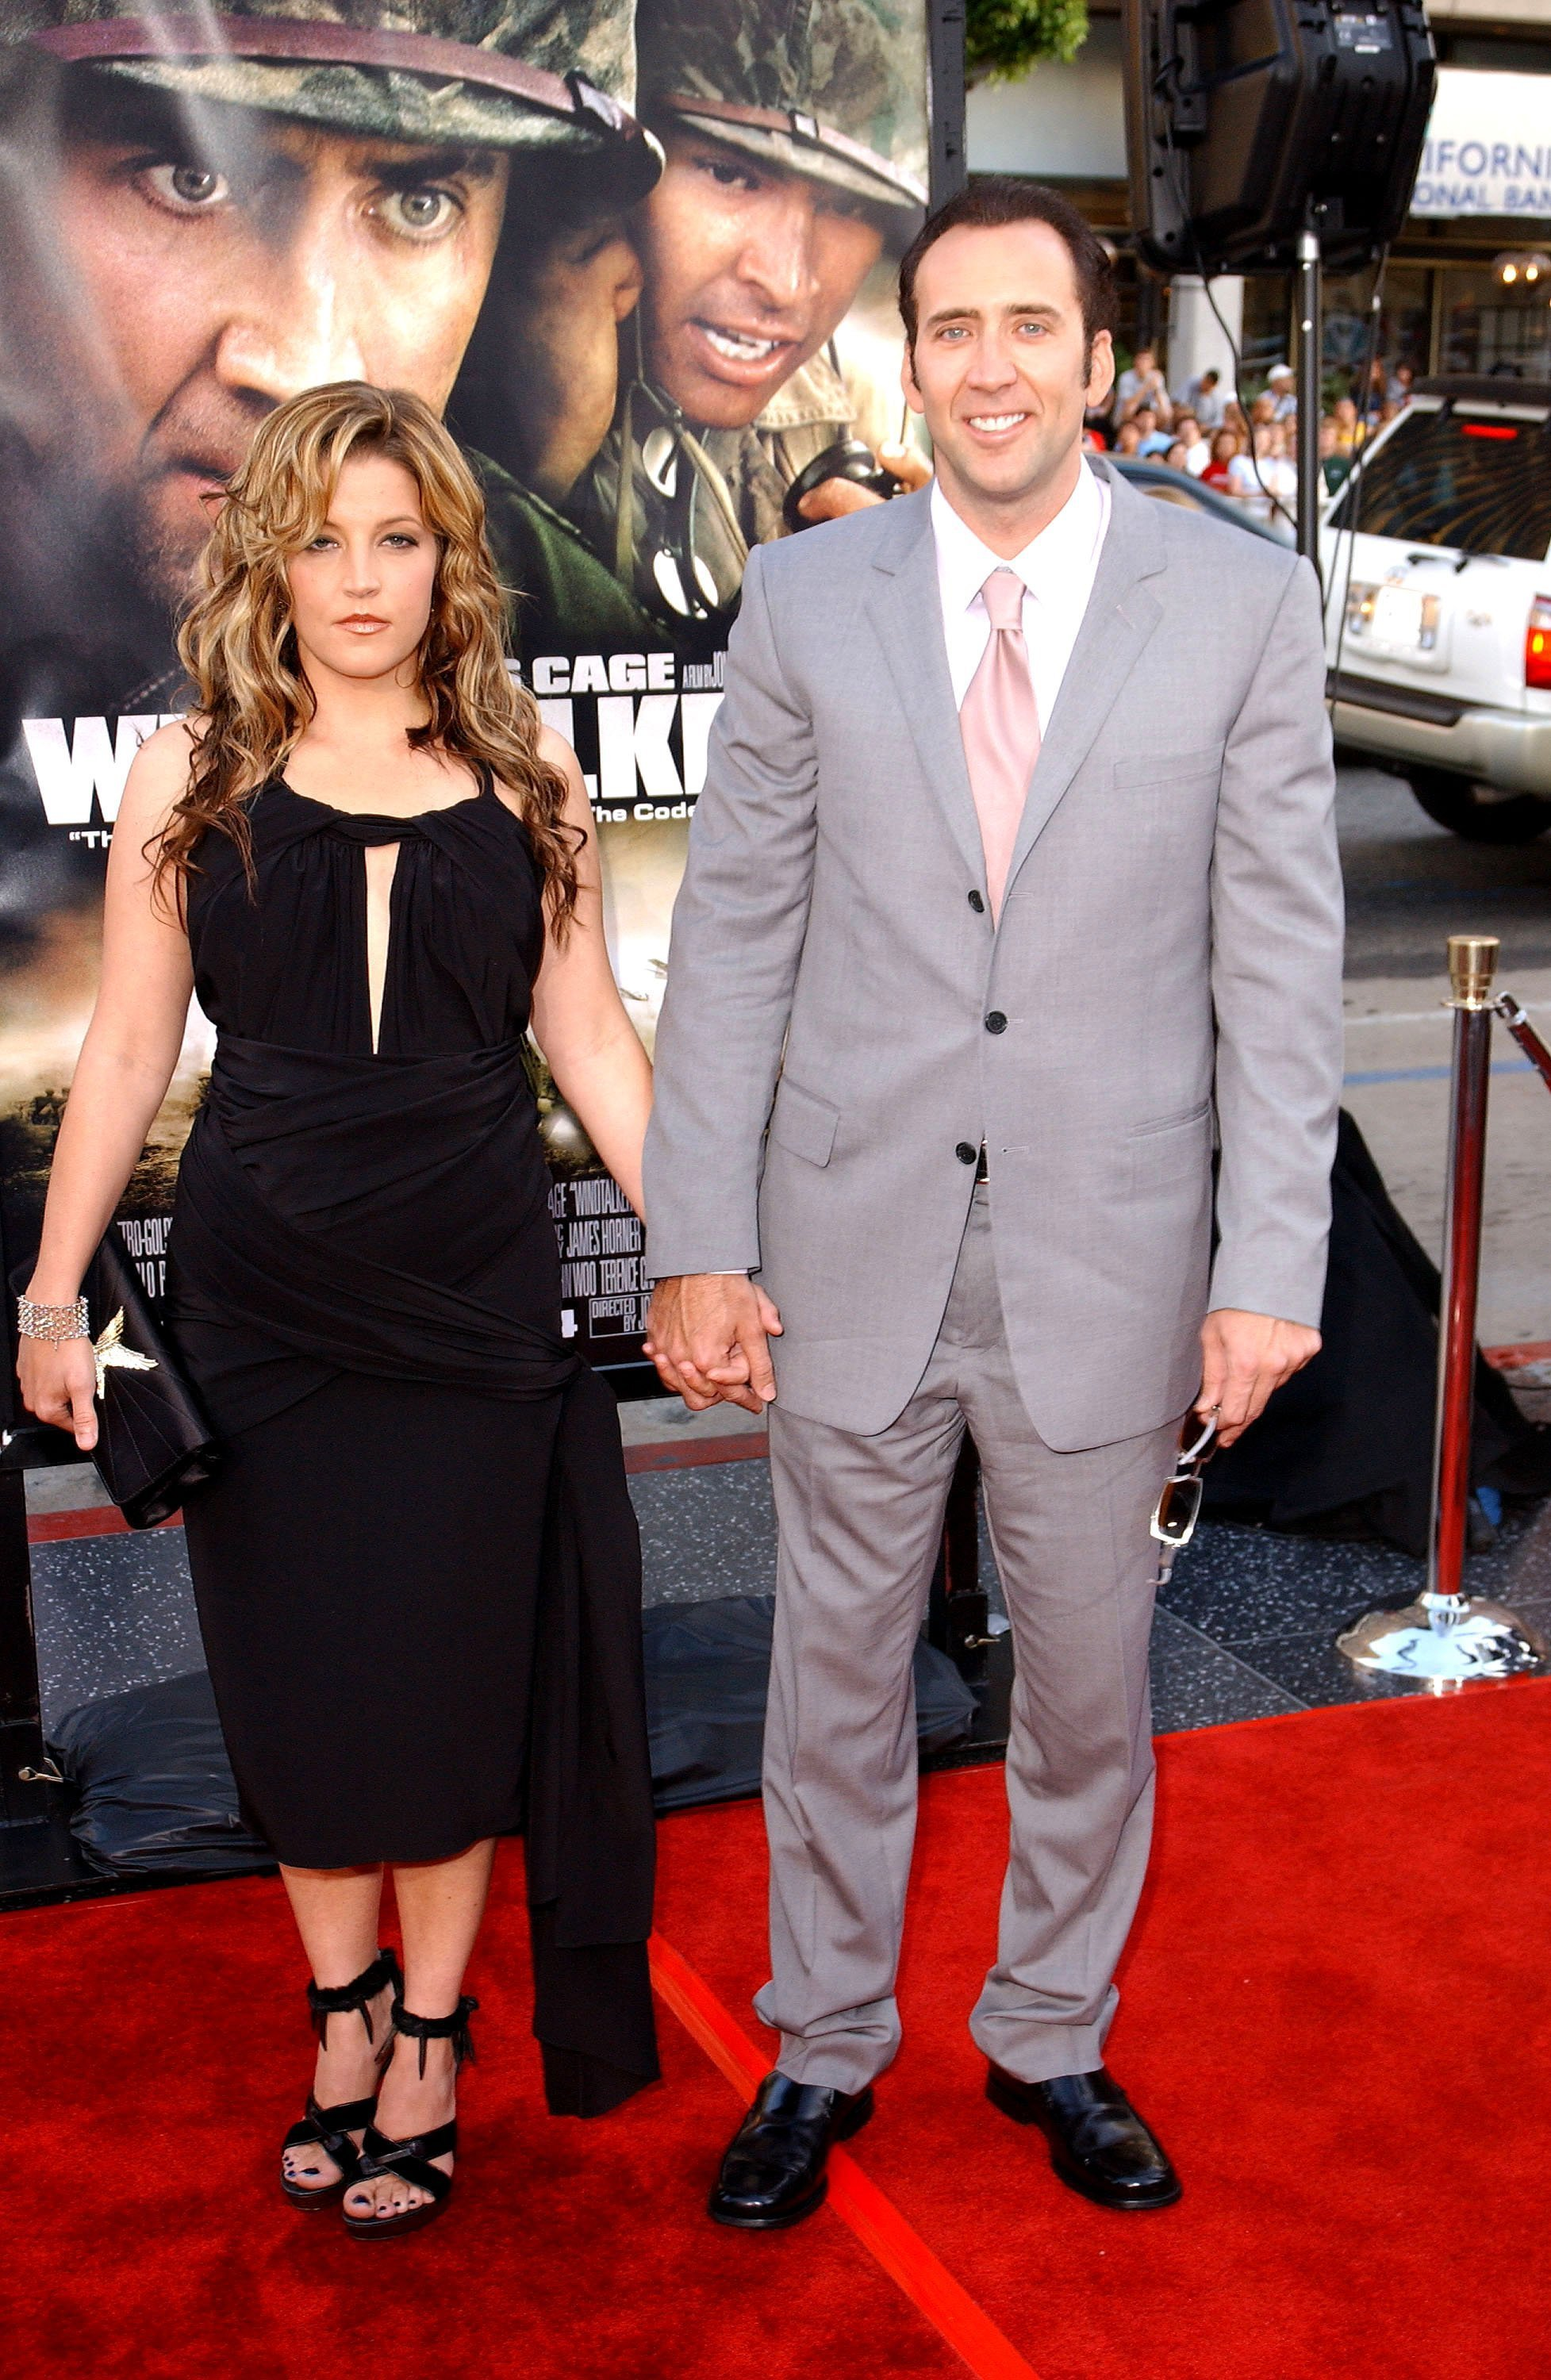 Lisa Marie Presley and Nicolas Cage on June 11, 2002 in Hollywood, California | Source: Getty Images/Global Images Ukraine